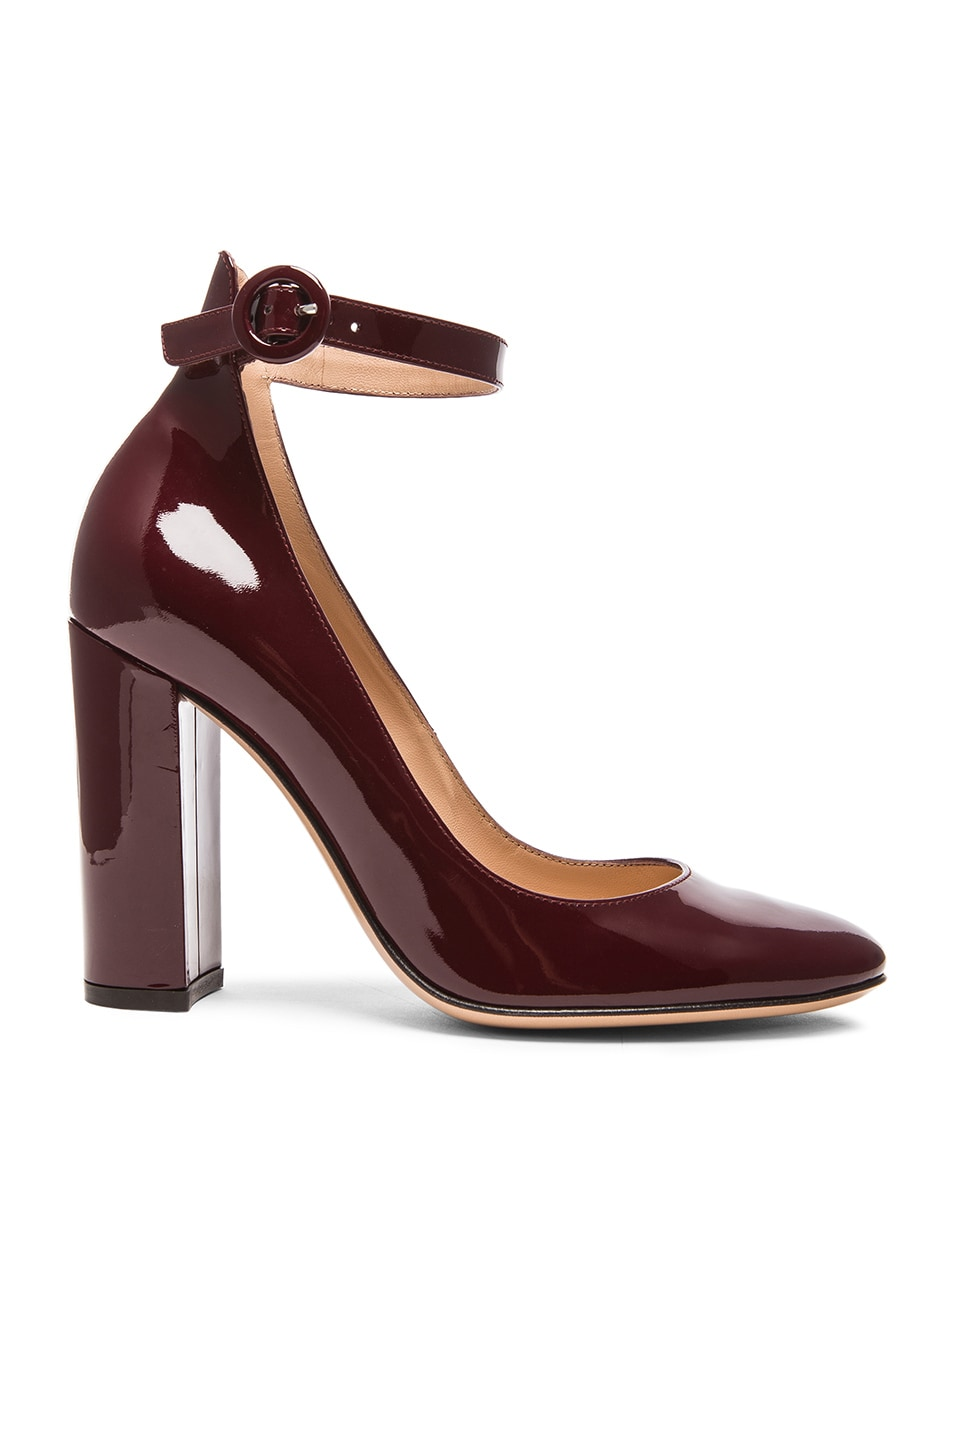 Image 1 of Gianvito Rossi Patent Leather Mary Jane Heels in Royale